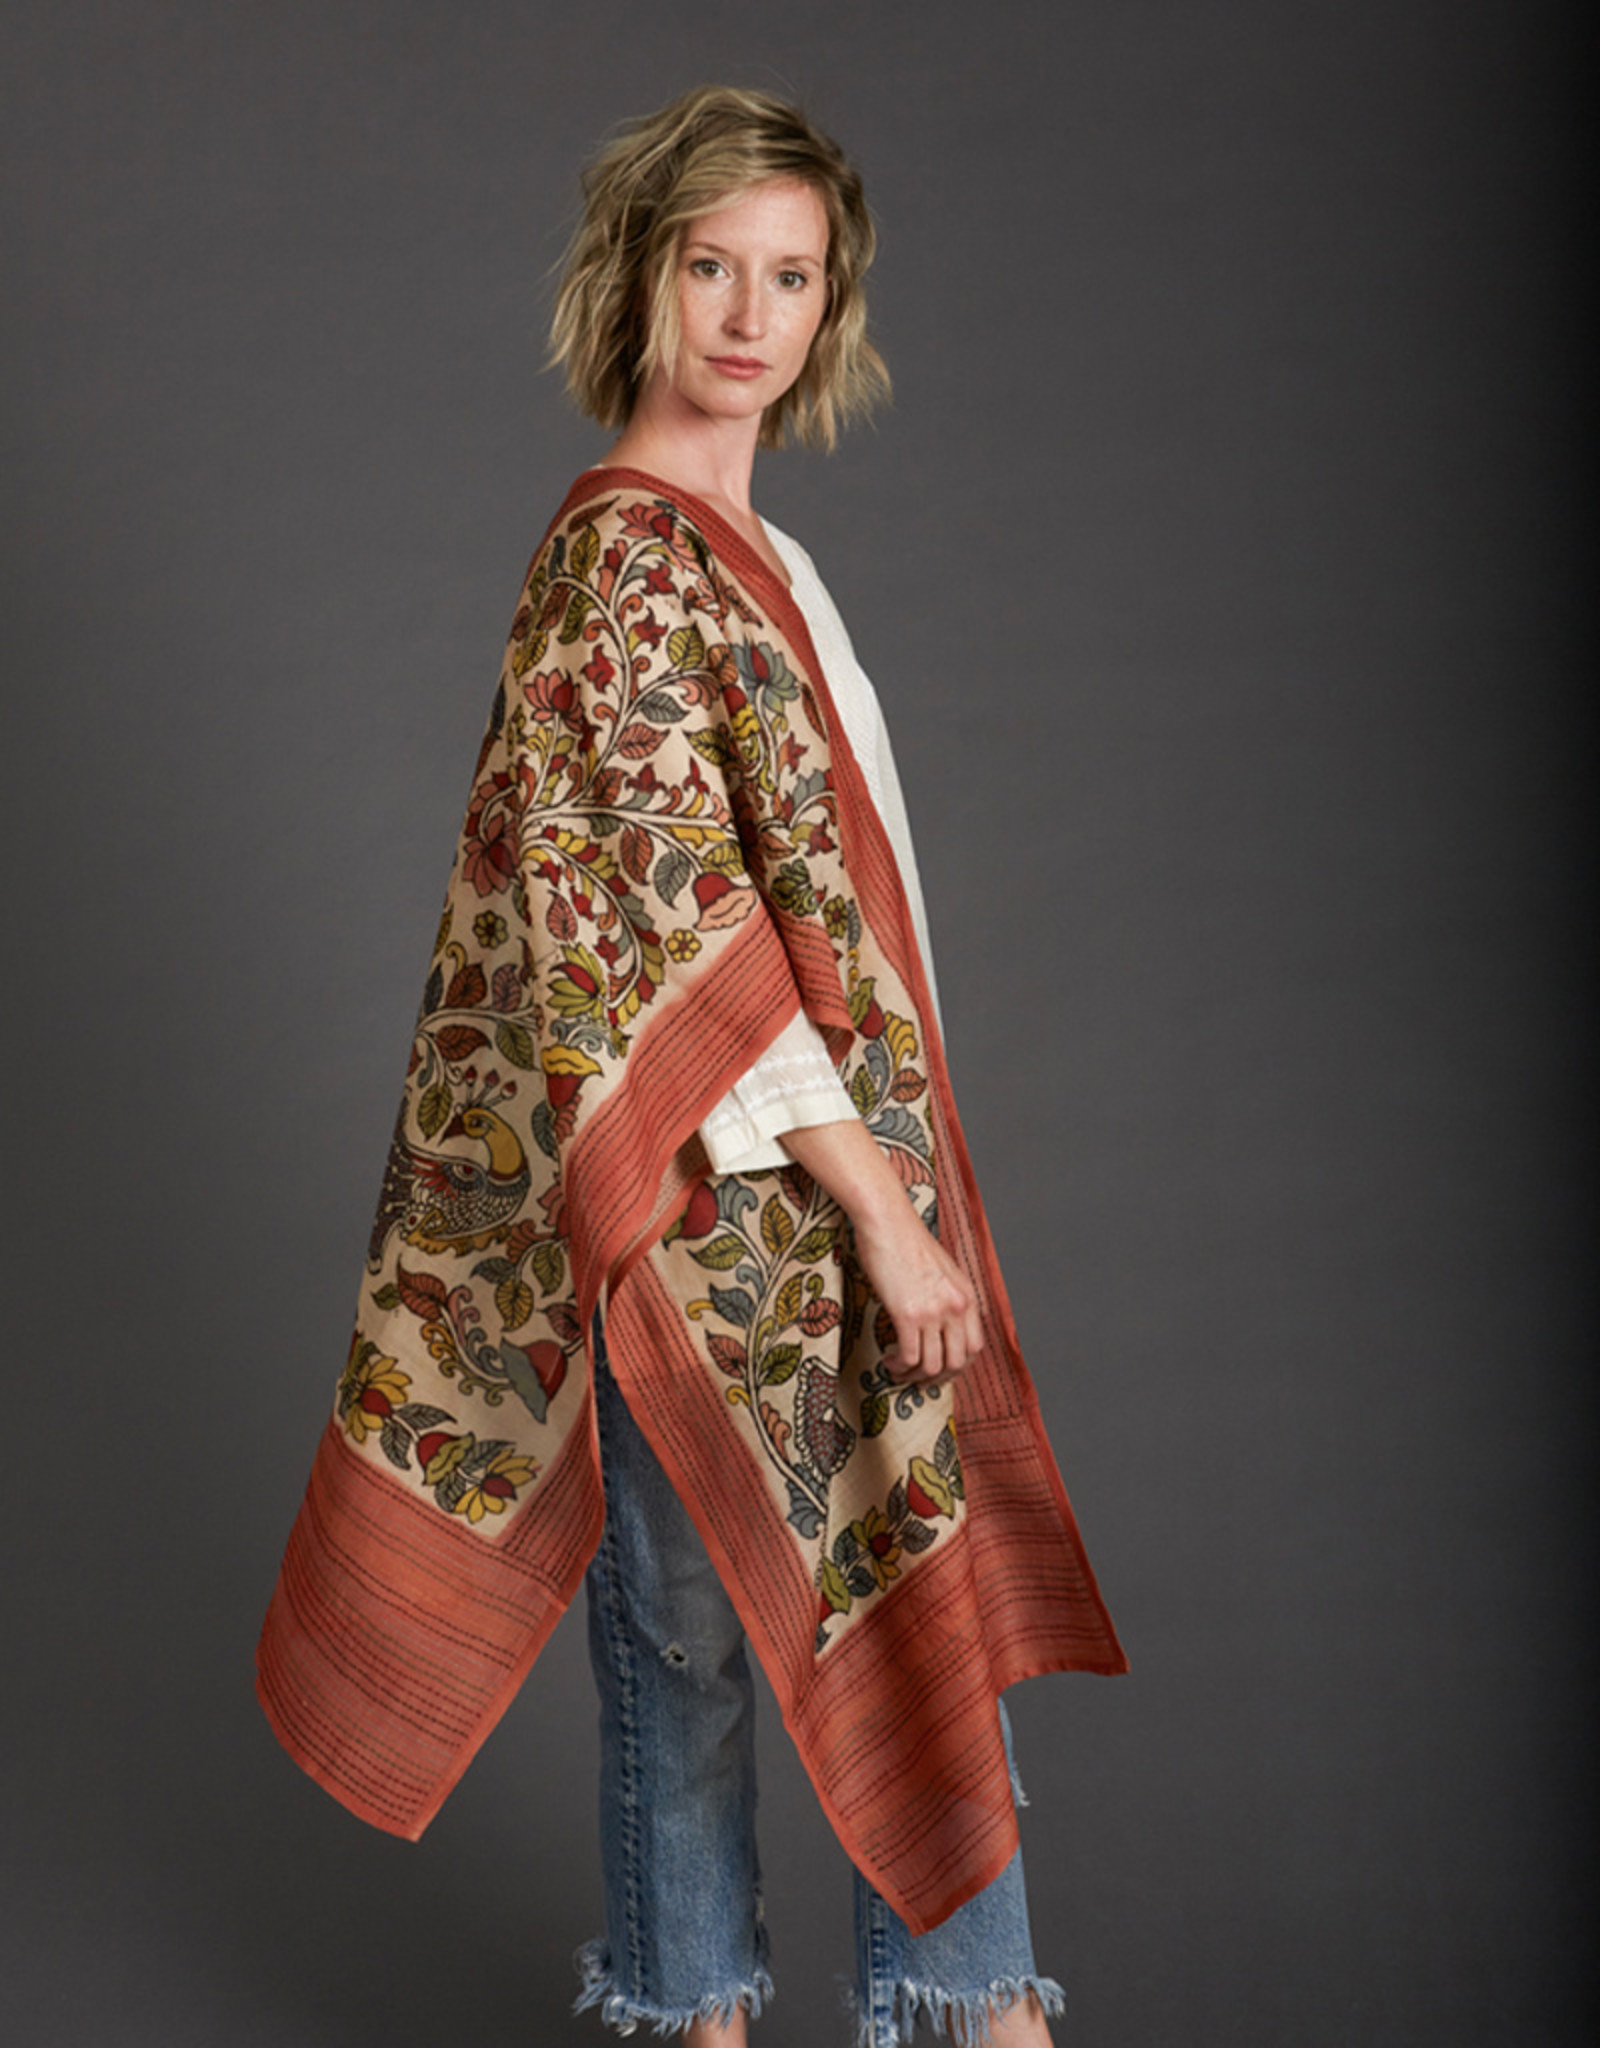 Dwaraka Hand Painted Cotton Scarf with Kantha Stitch Border Cream